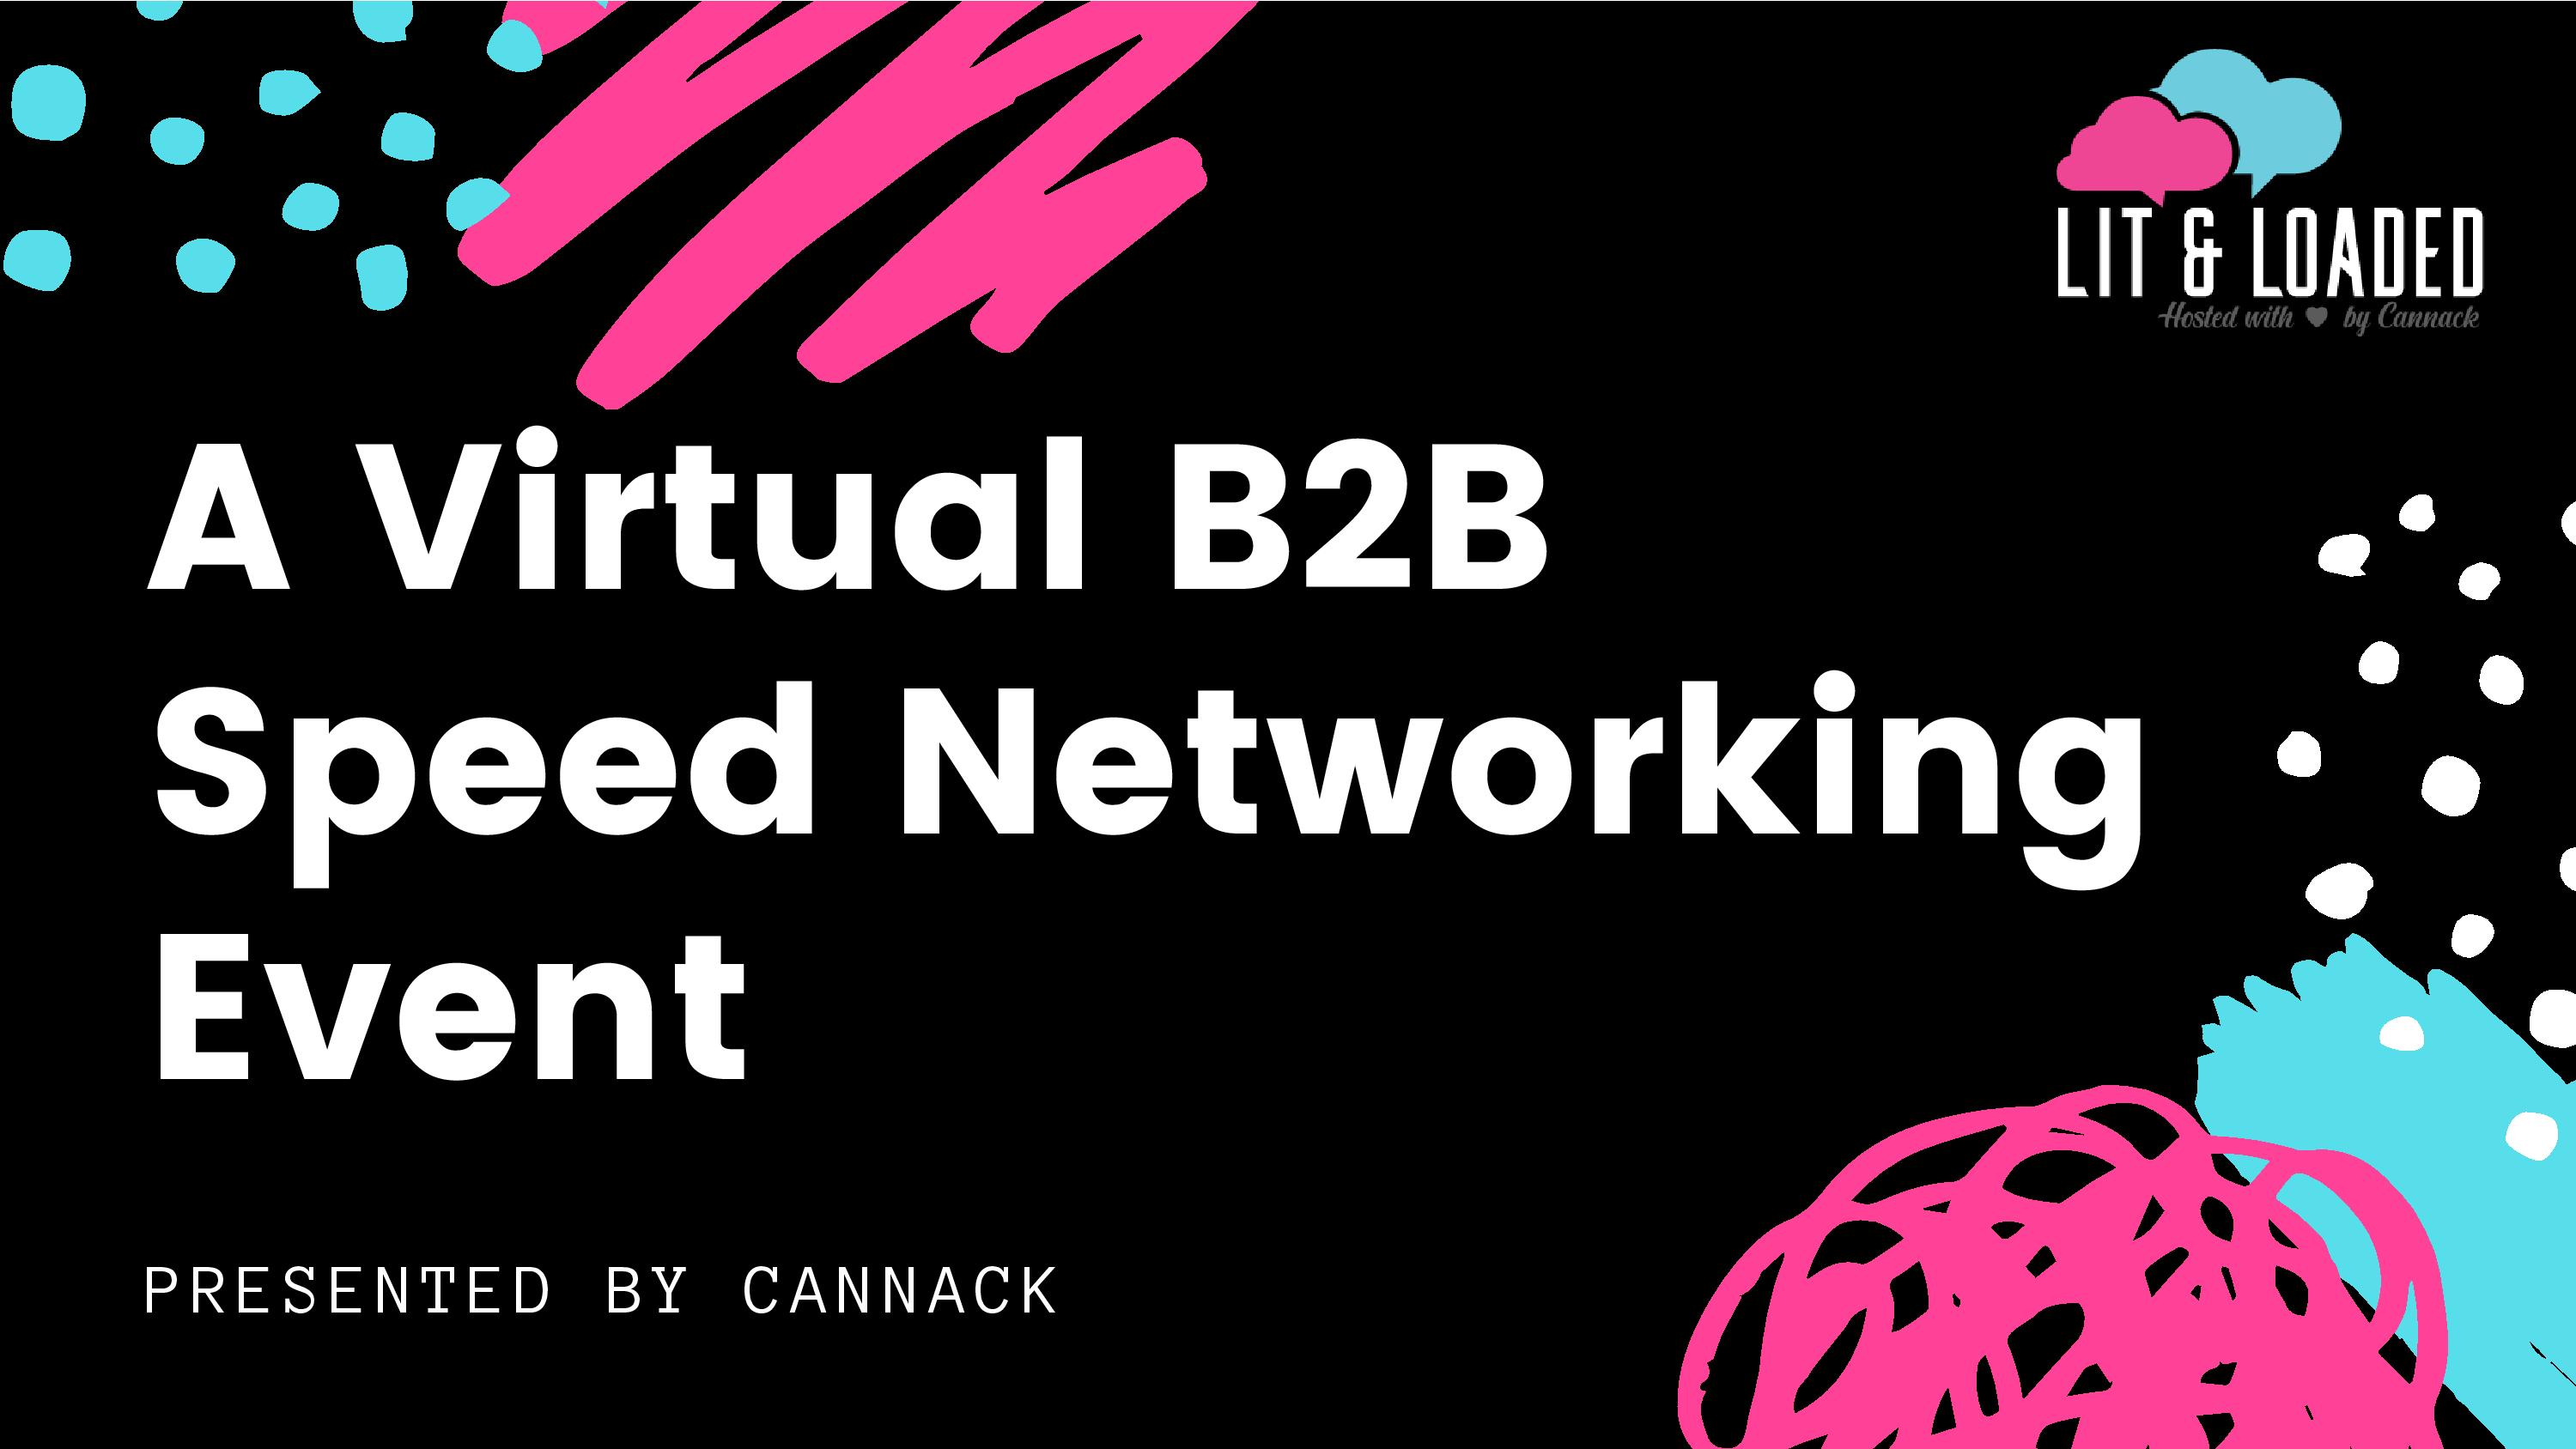 Lit & Loaded, A Virtual B2B Speed Networking Event